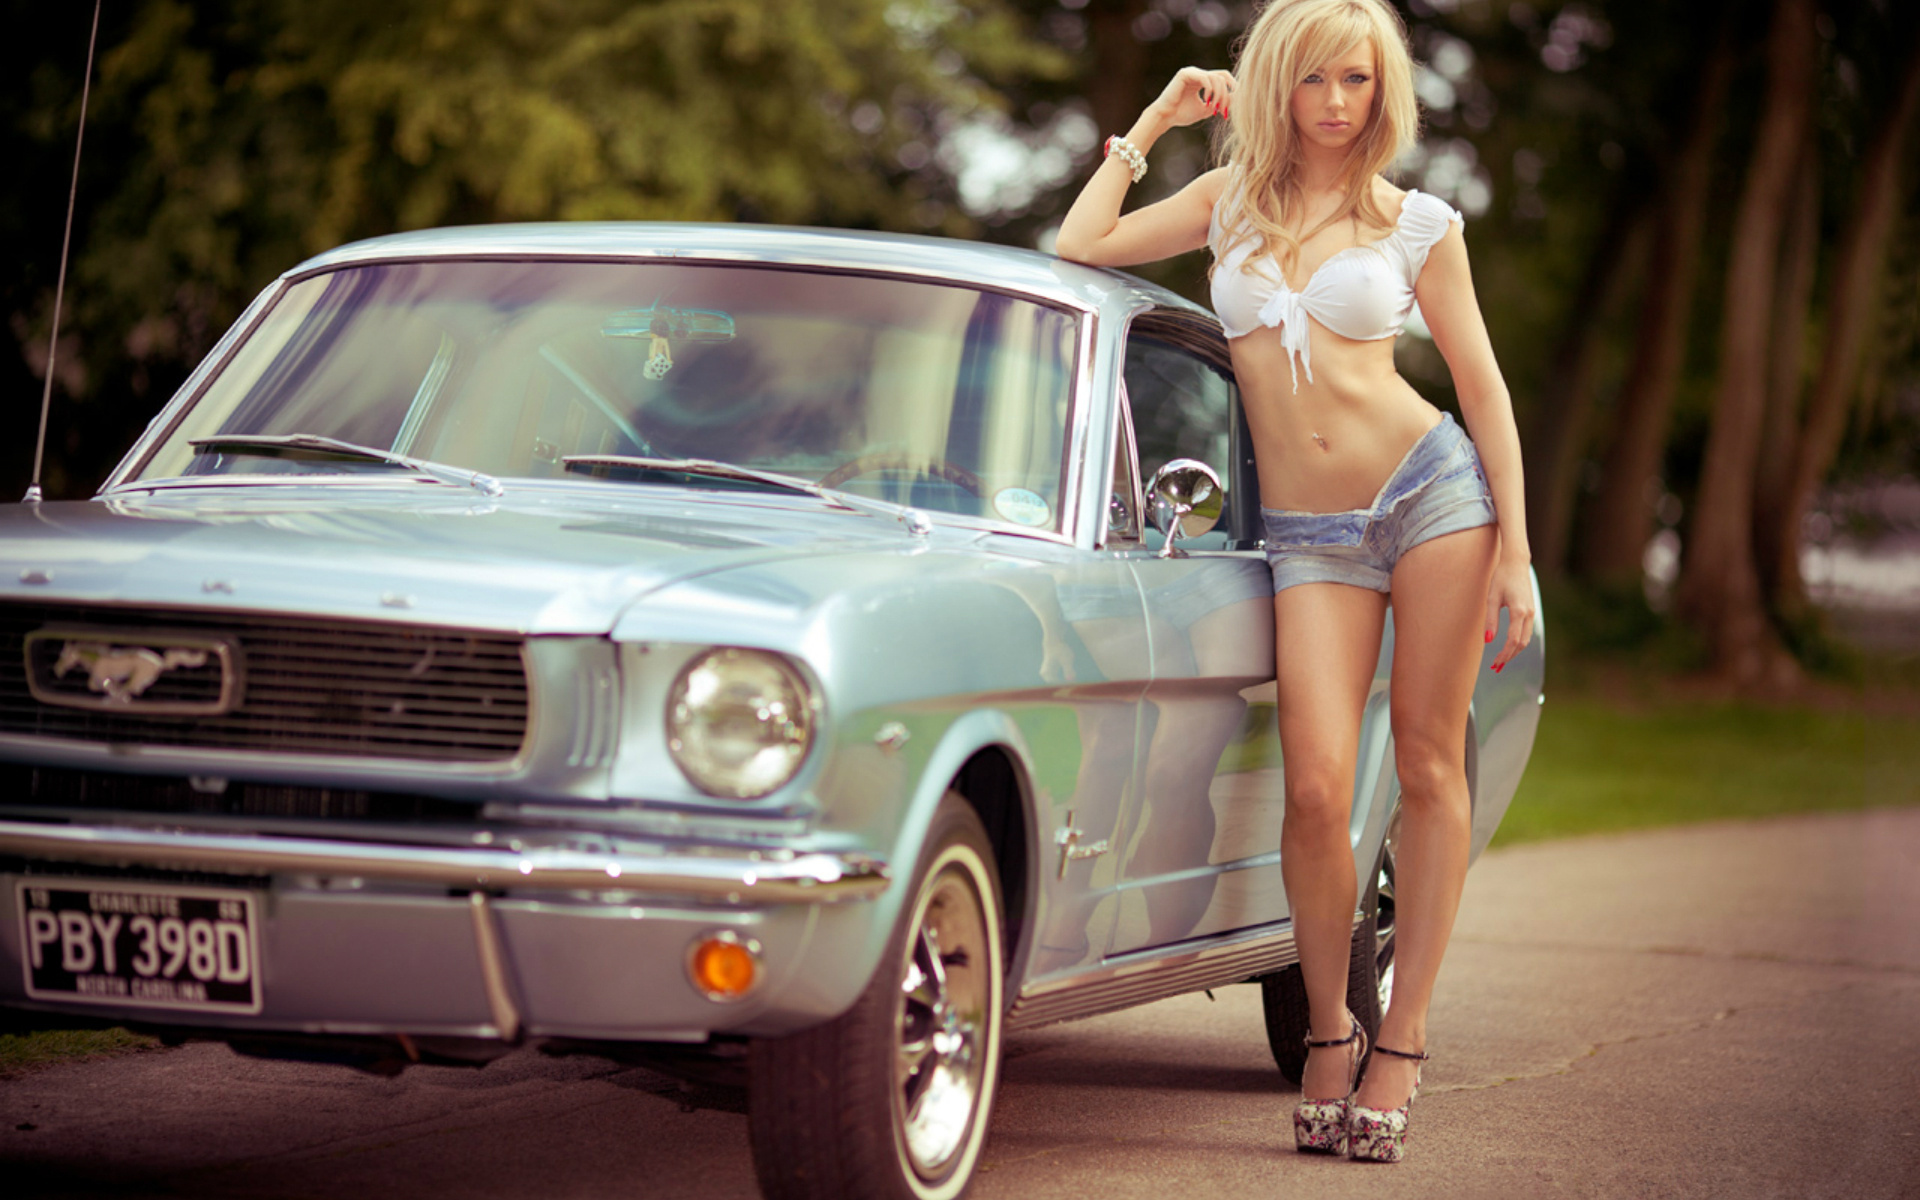 Sexy girls with hot cars